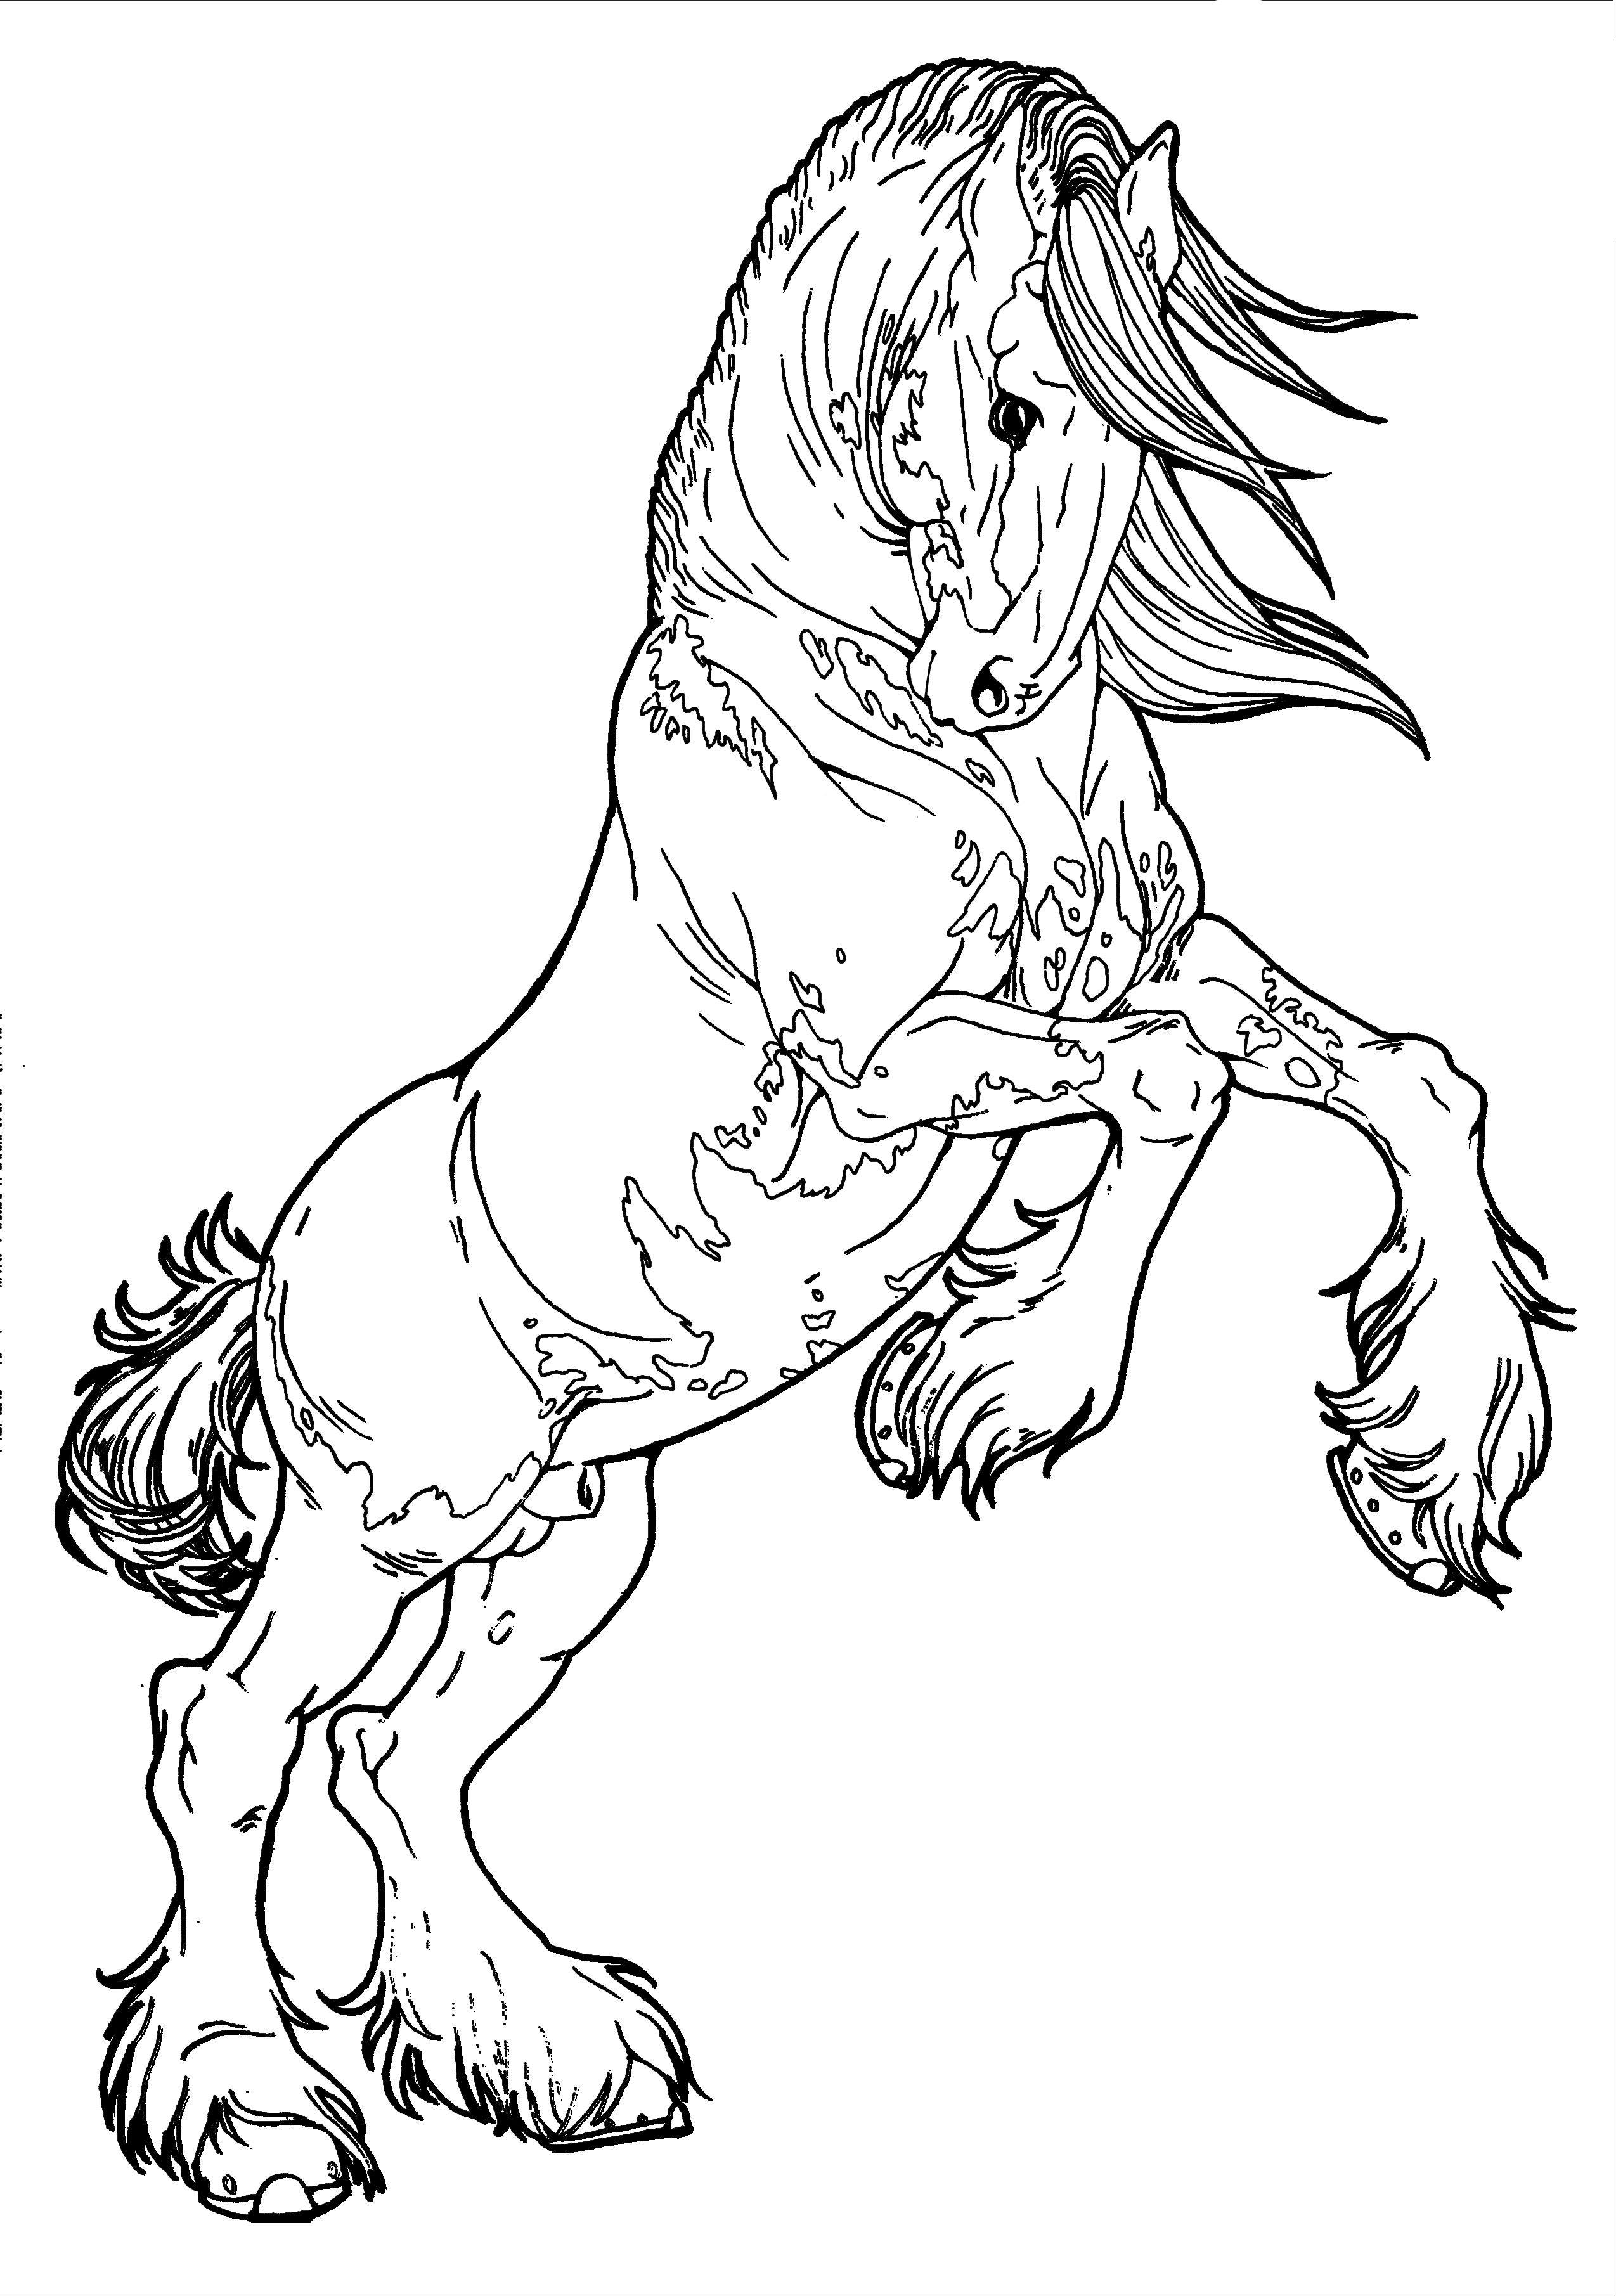 Coloring Pages Of Horses And Dogs